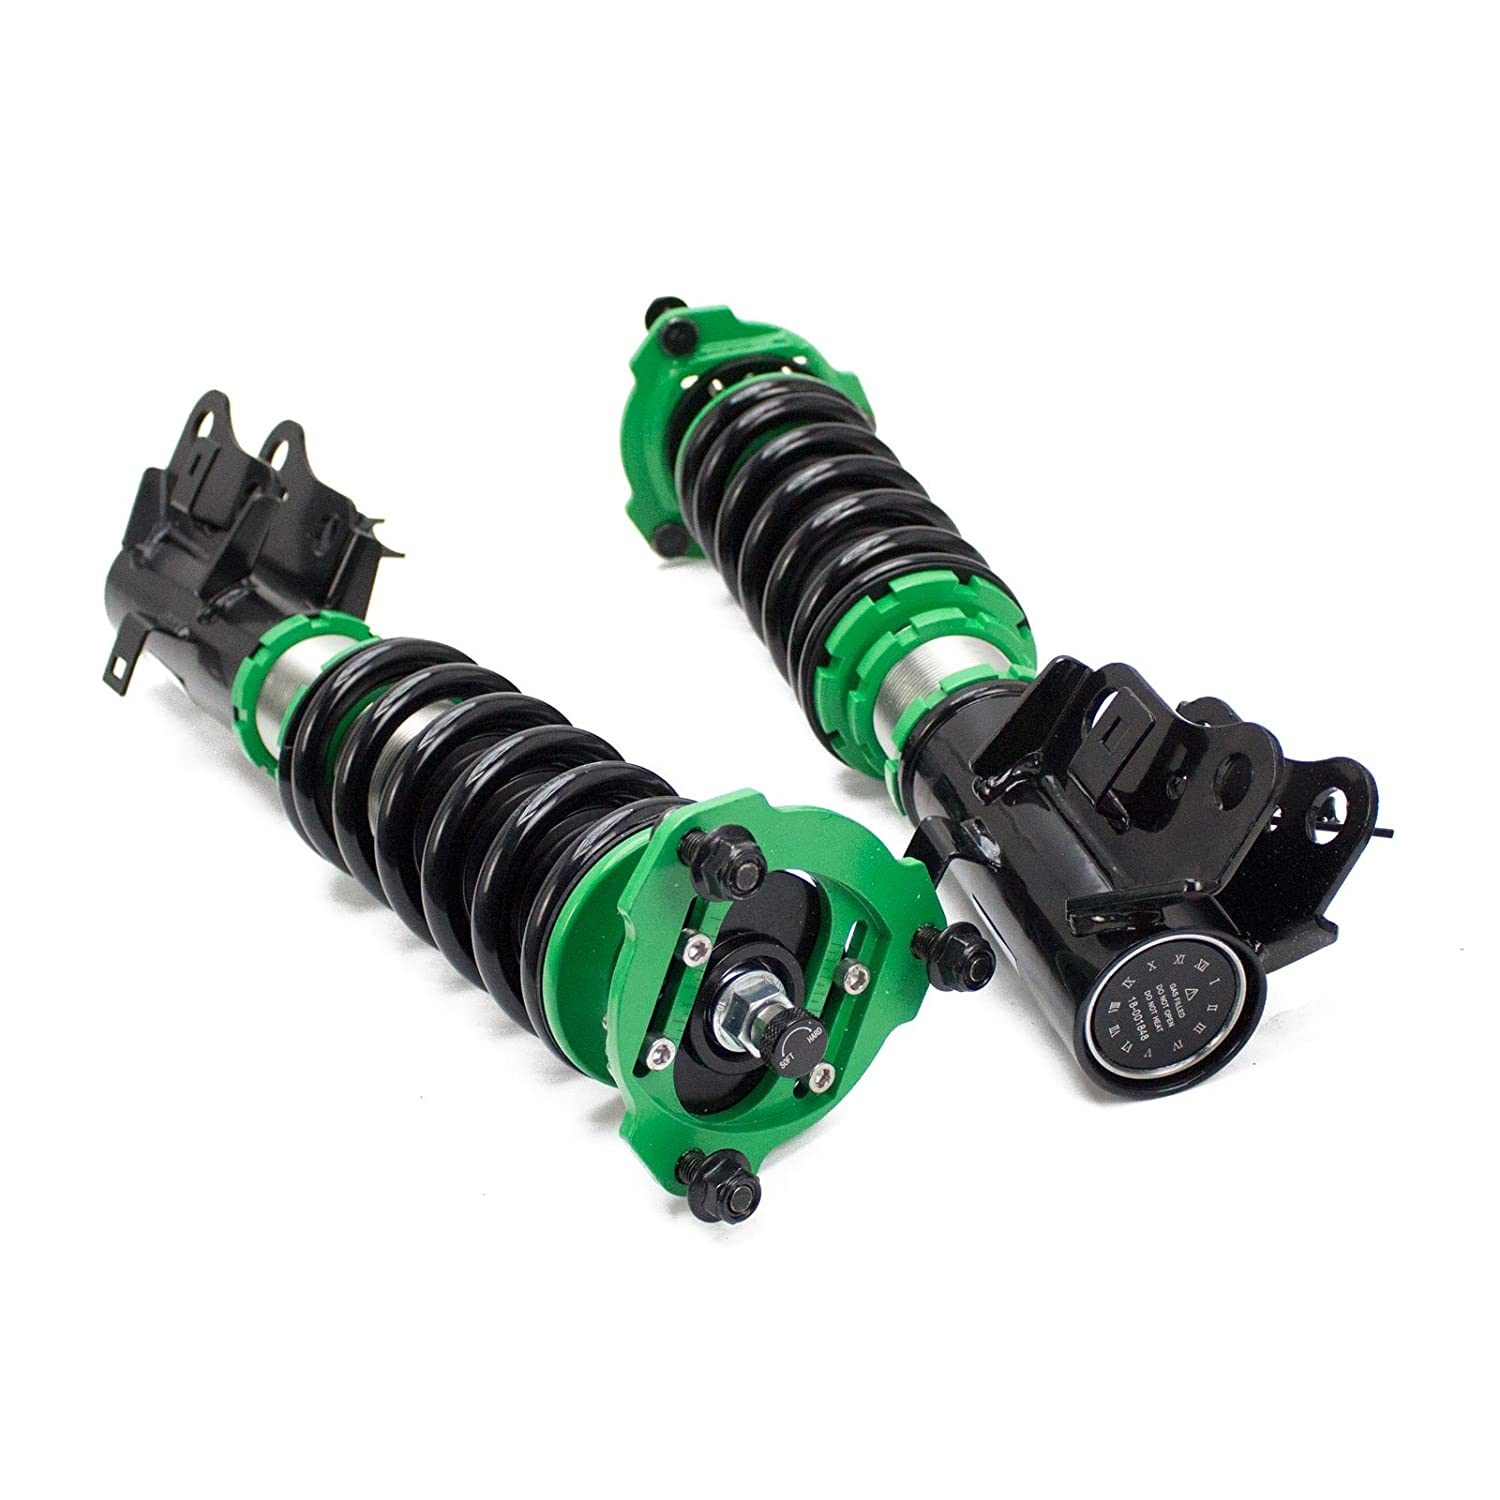 Full Length Adjustable Hyper-Street II Coilover Suspension Lowering Kit Mono-Tube Shock w// 32 Click Rebound Setting